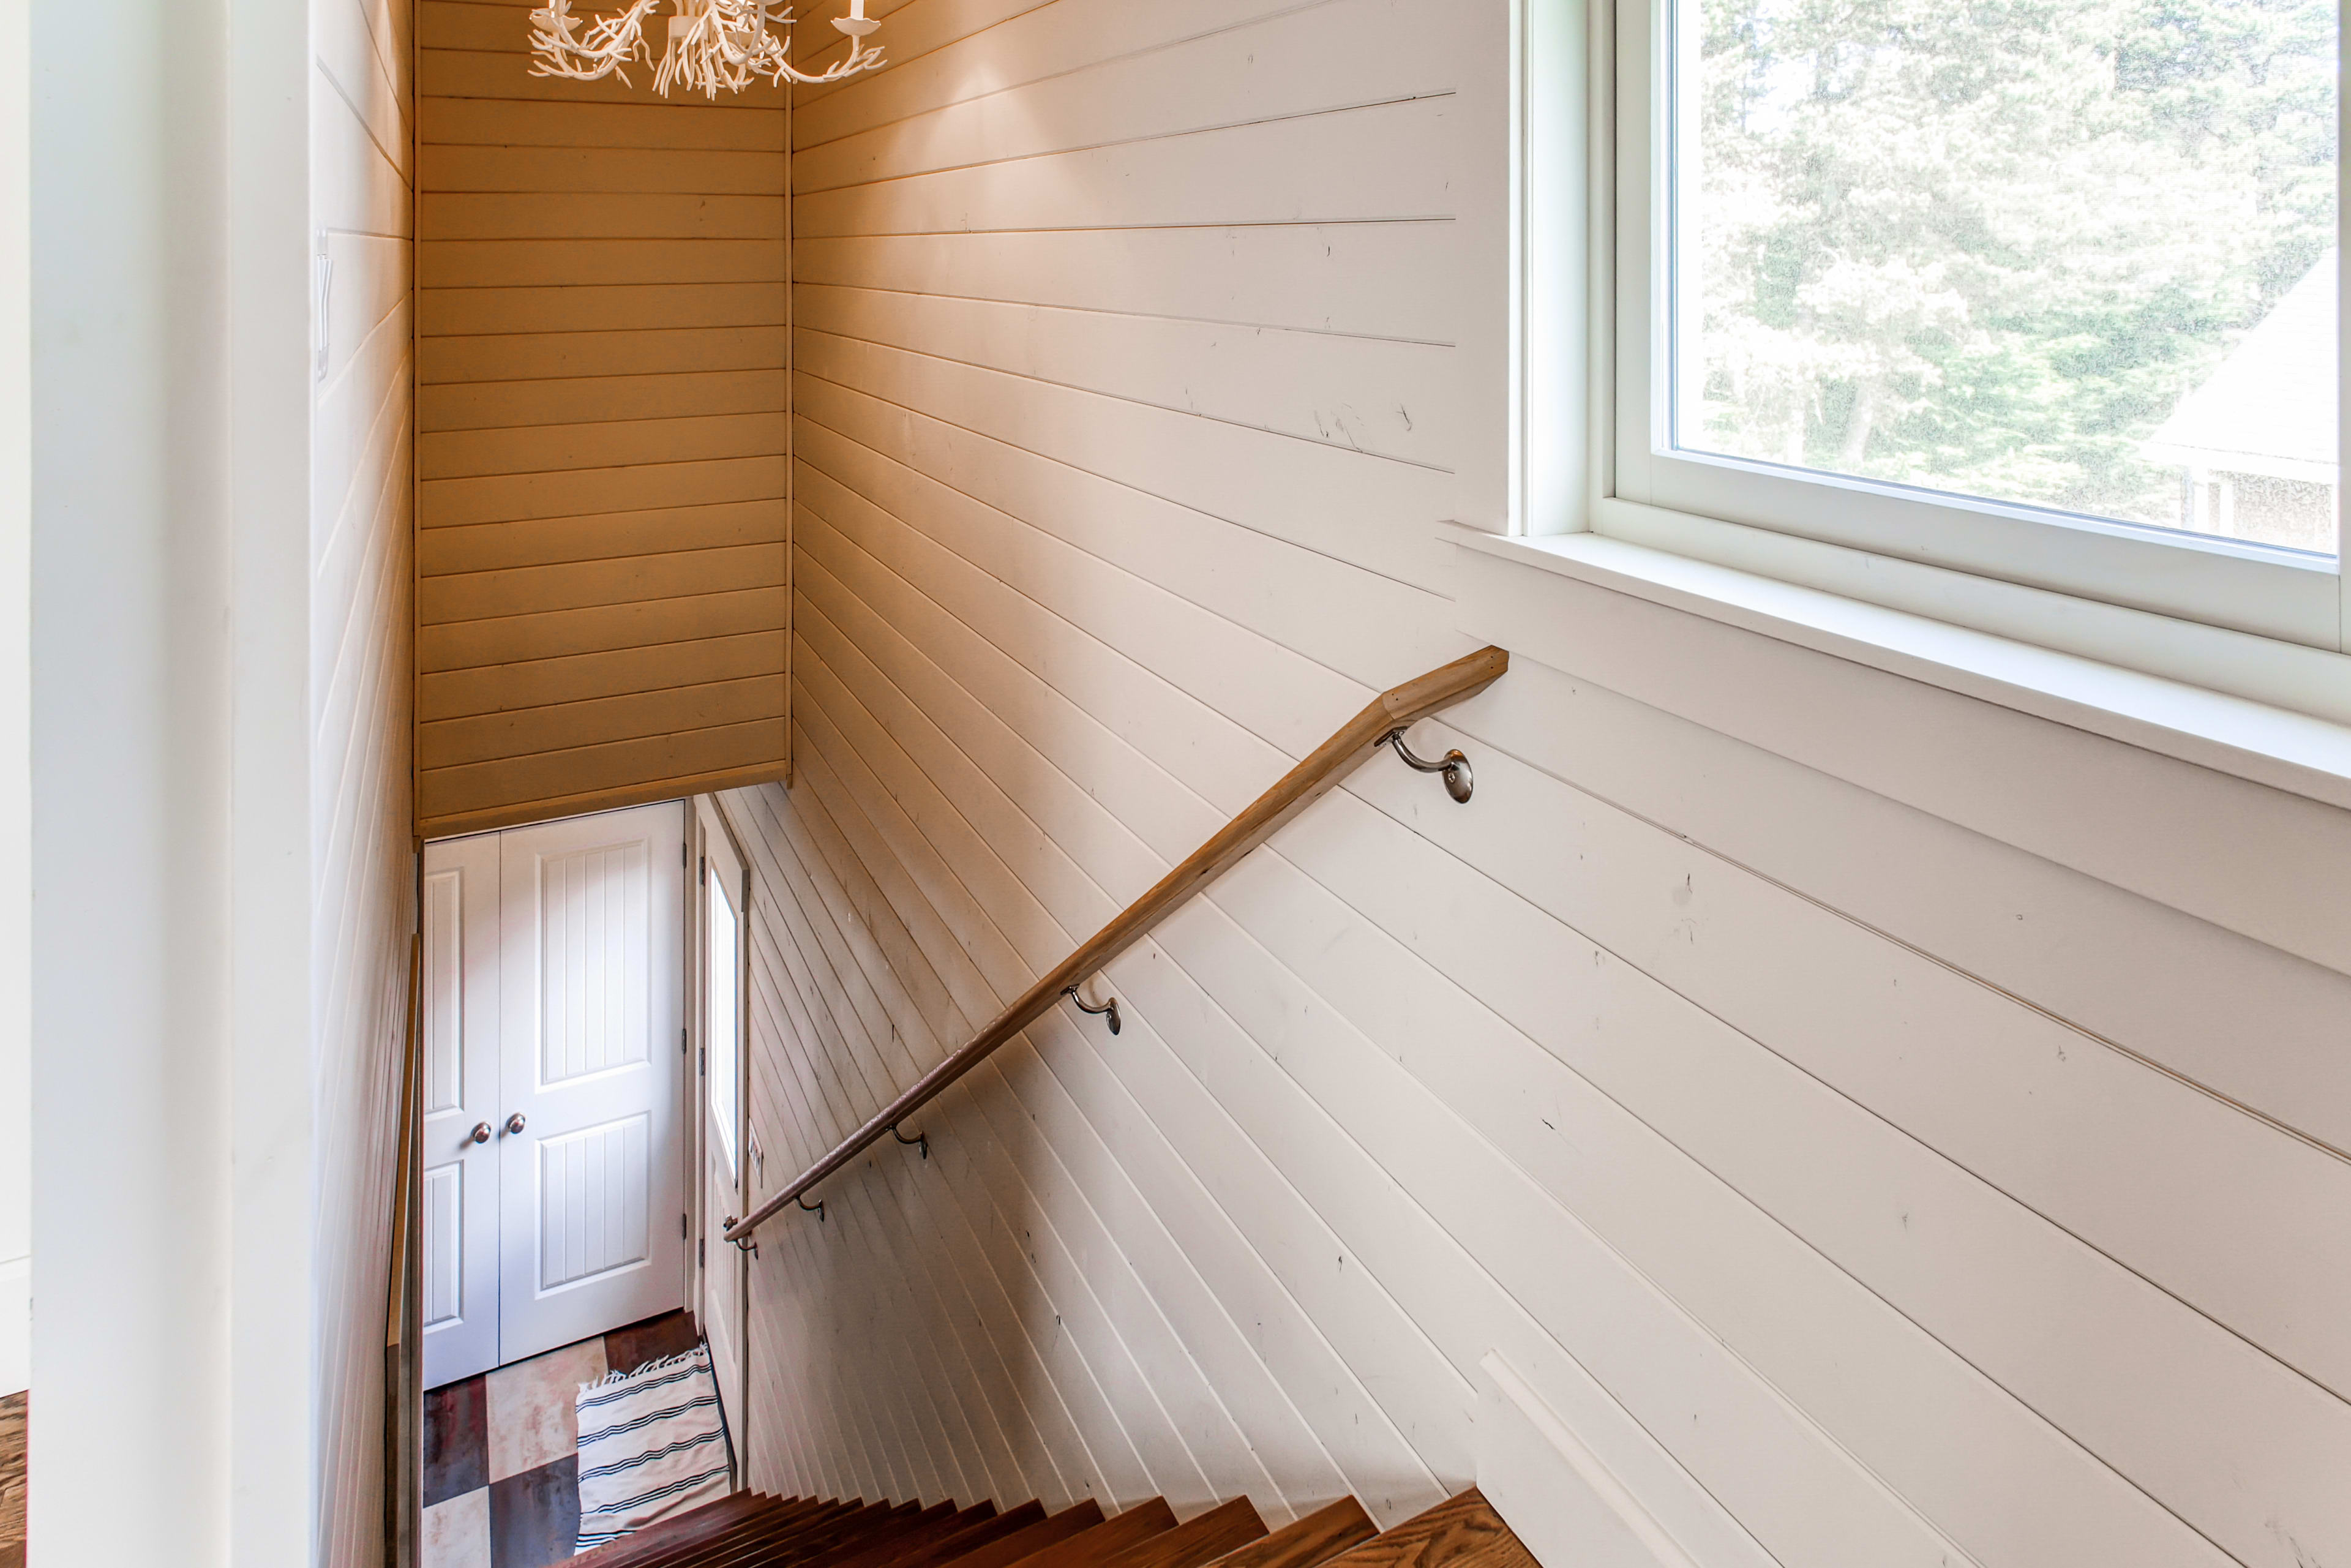 Stairs Required to Access Additional Bedrooms & Bathrooms